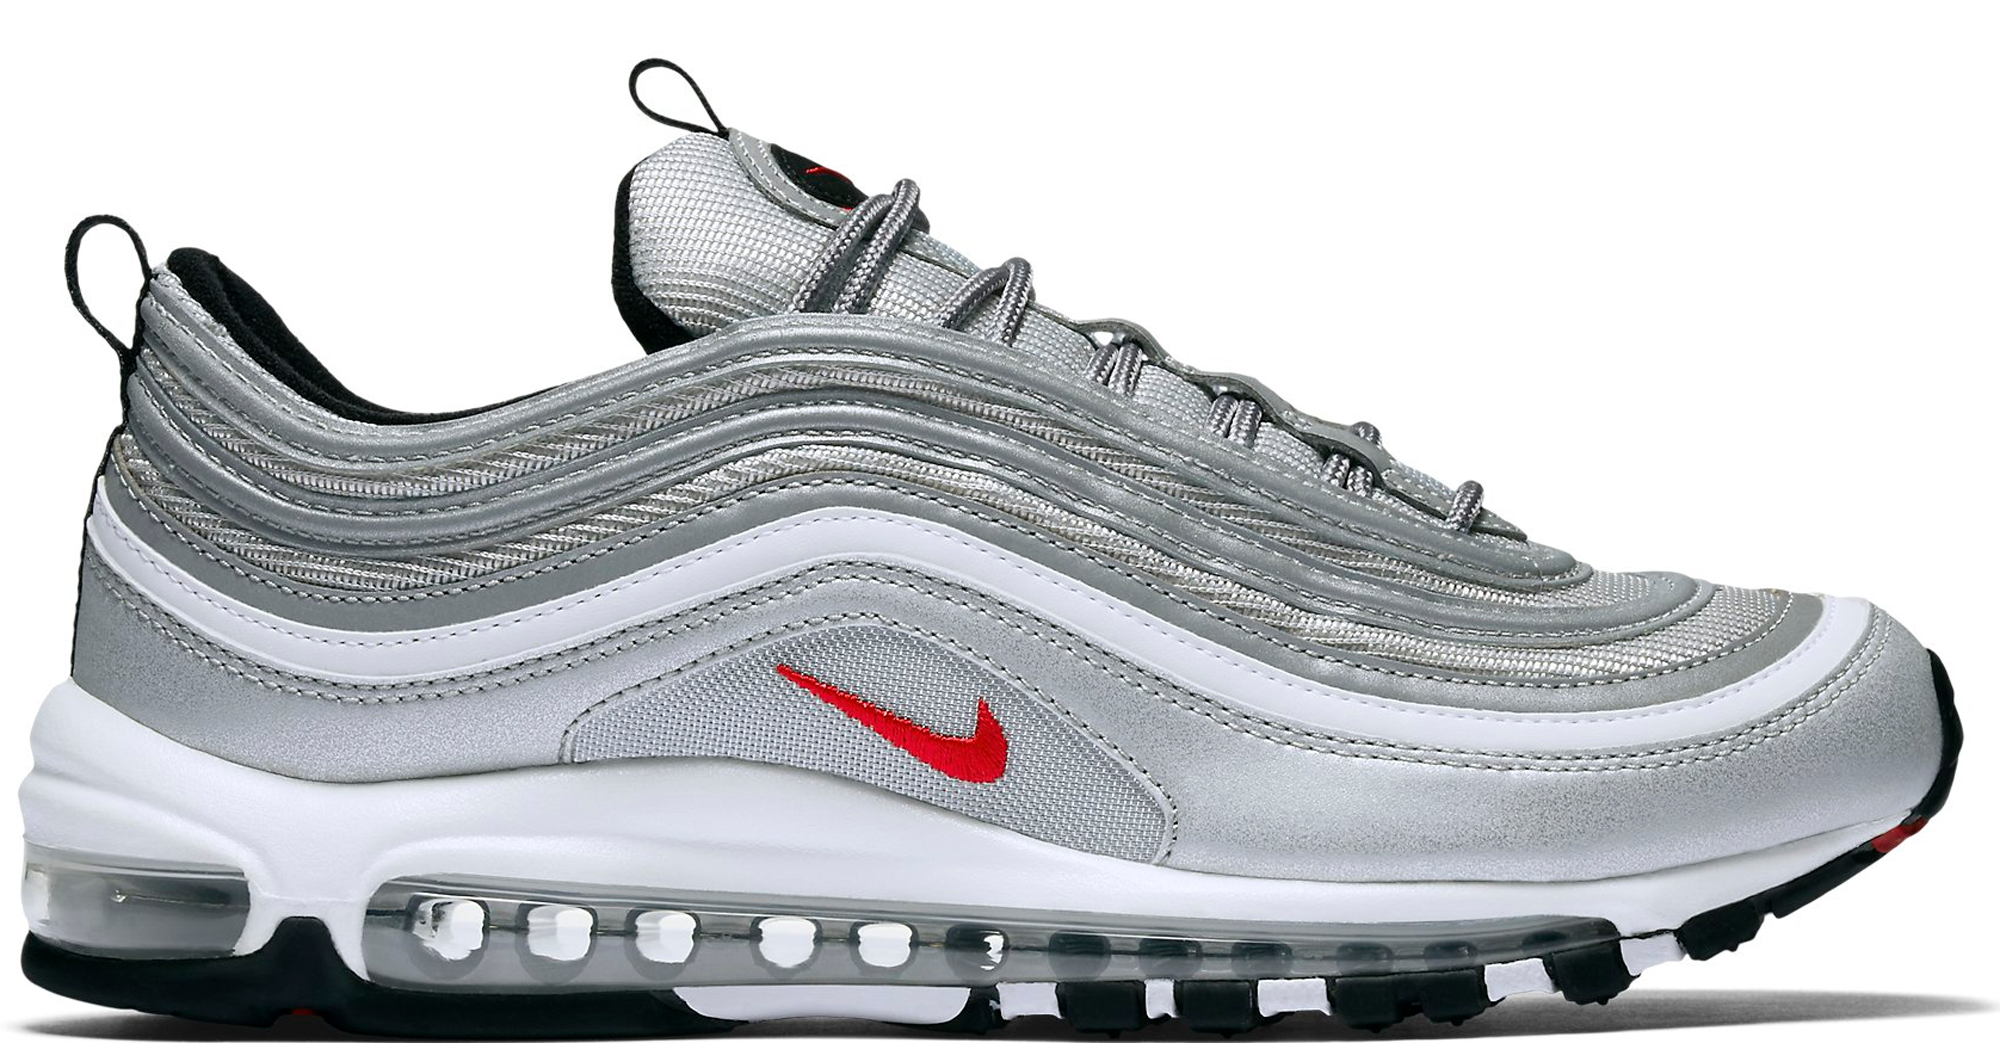 dd36ae4abc8d Nike Air Max 97 OG Silver Bullet (2017) - StockX News